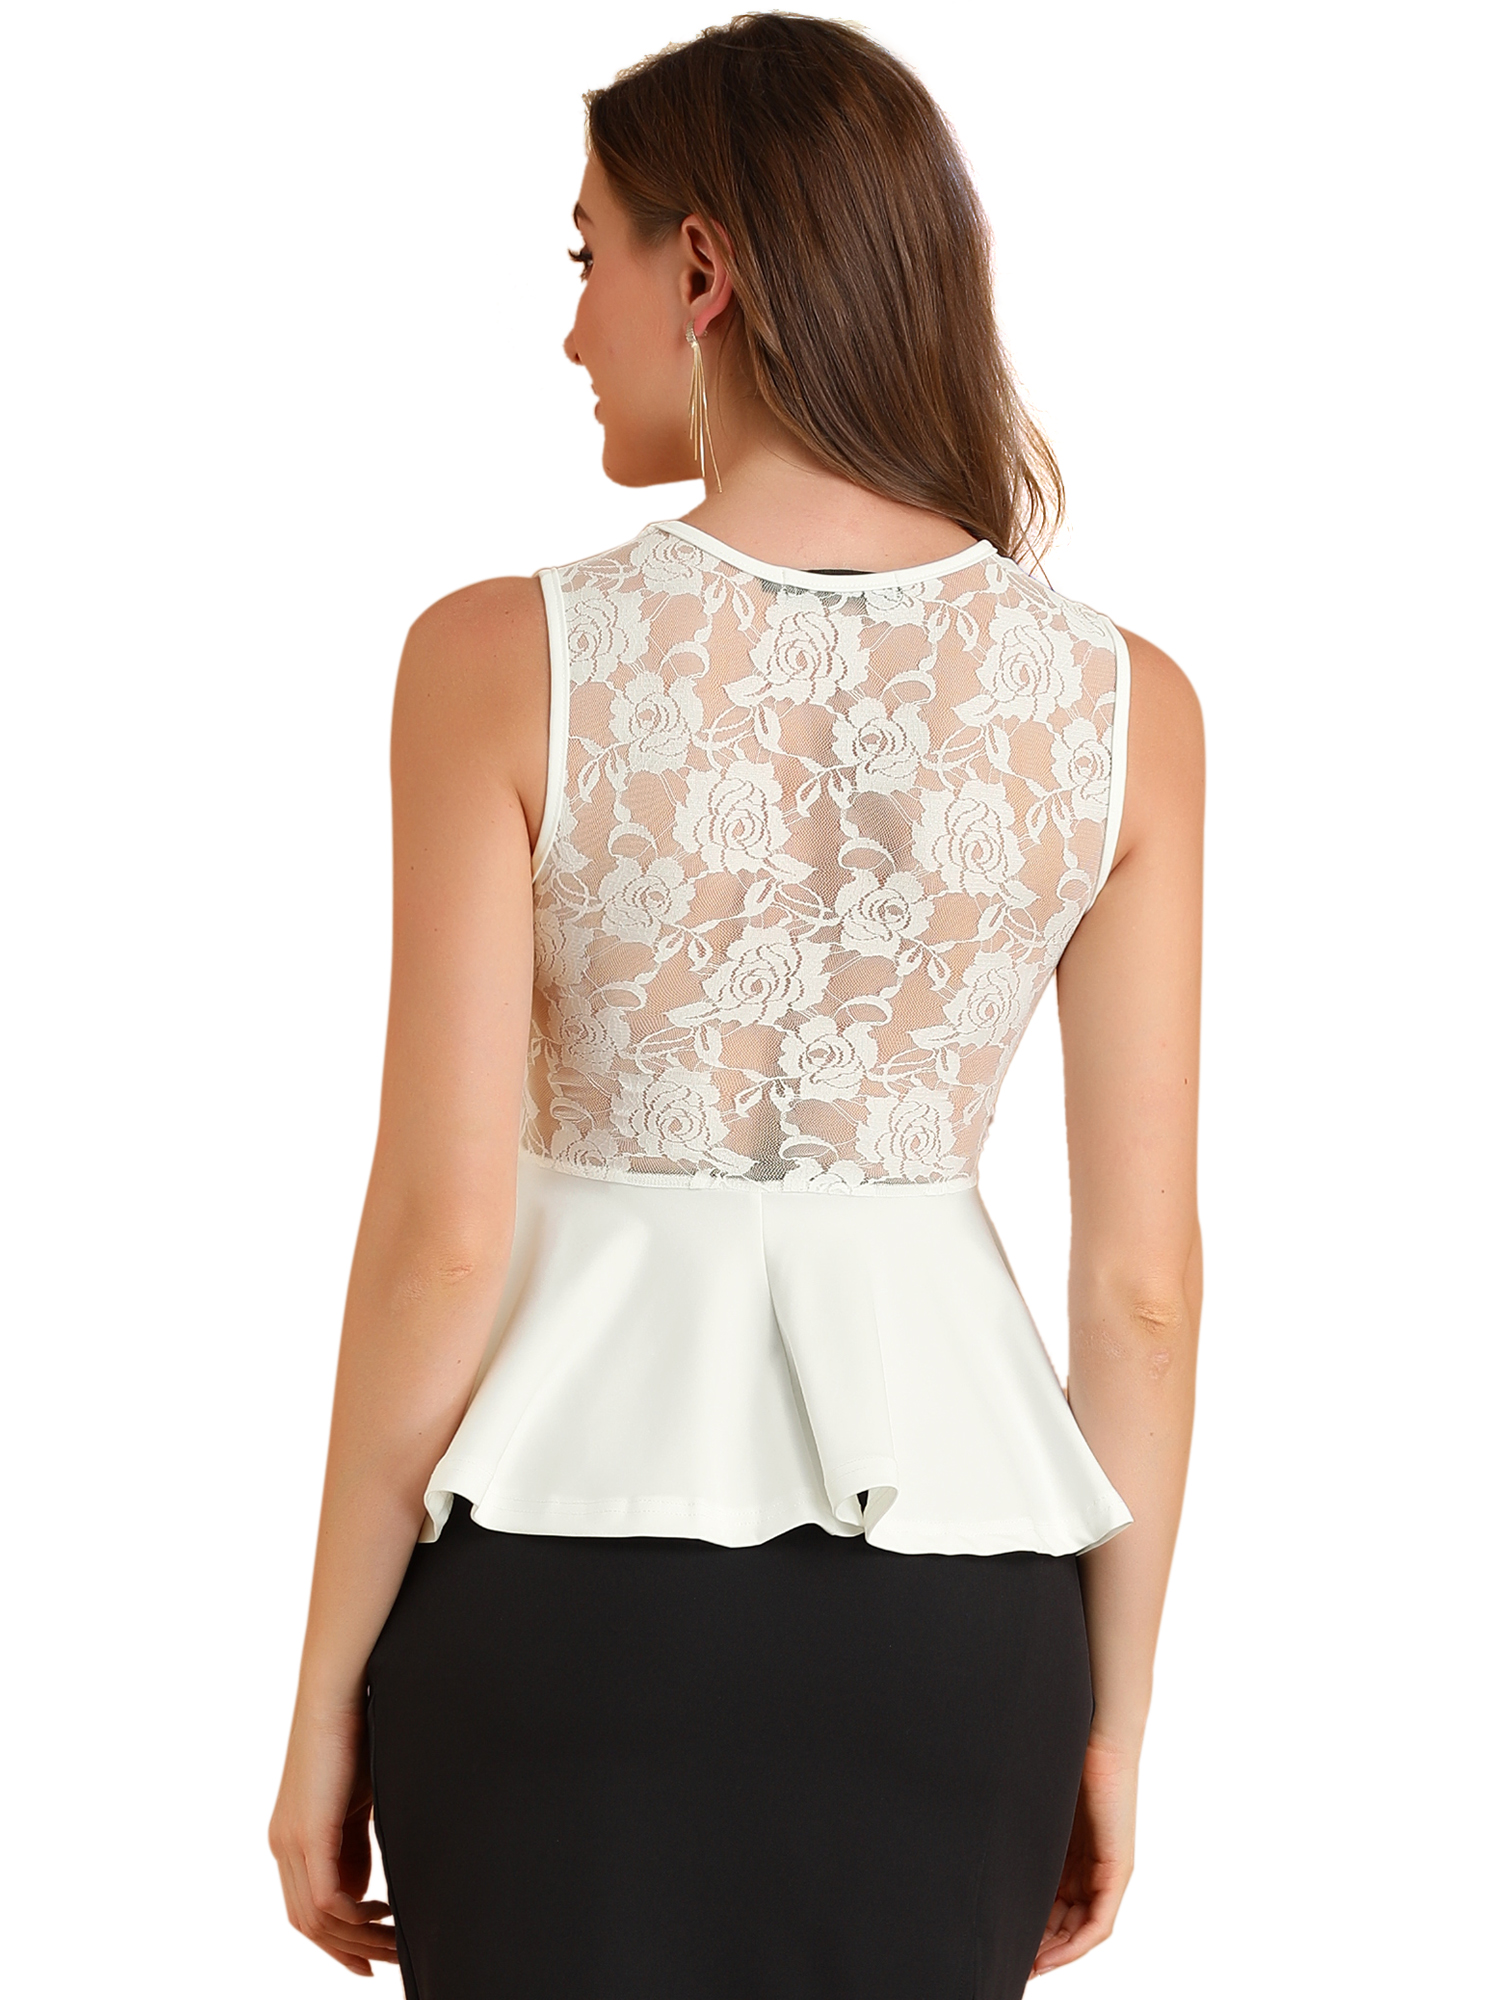 Ladies Sleeveless Floral Lace Peplum Tops White S